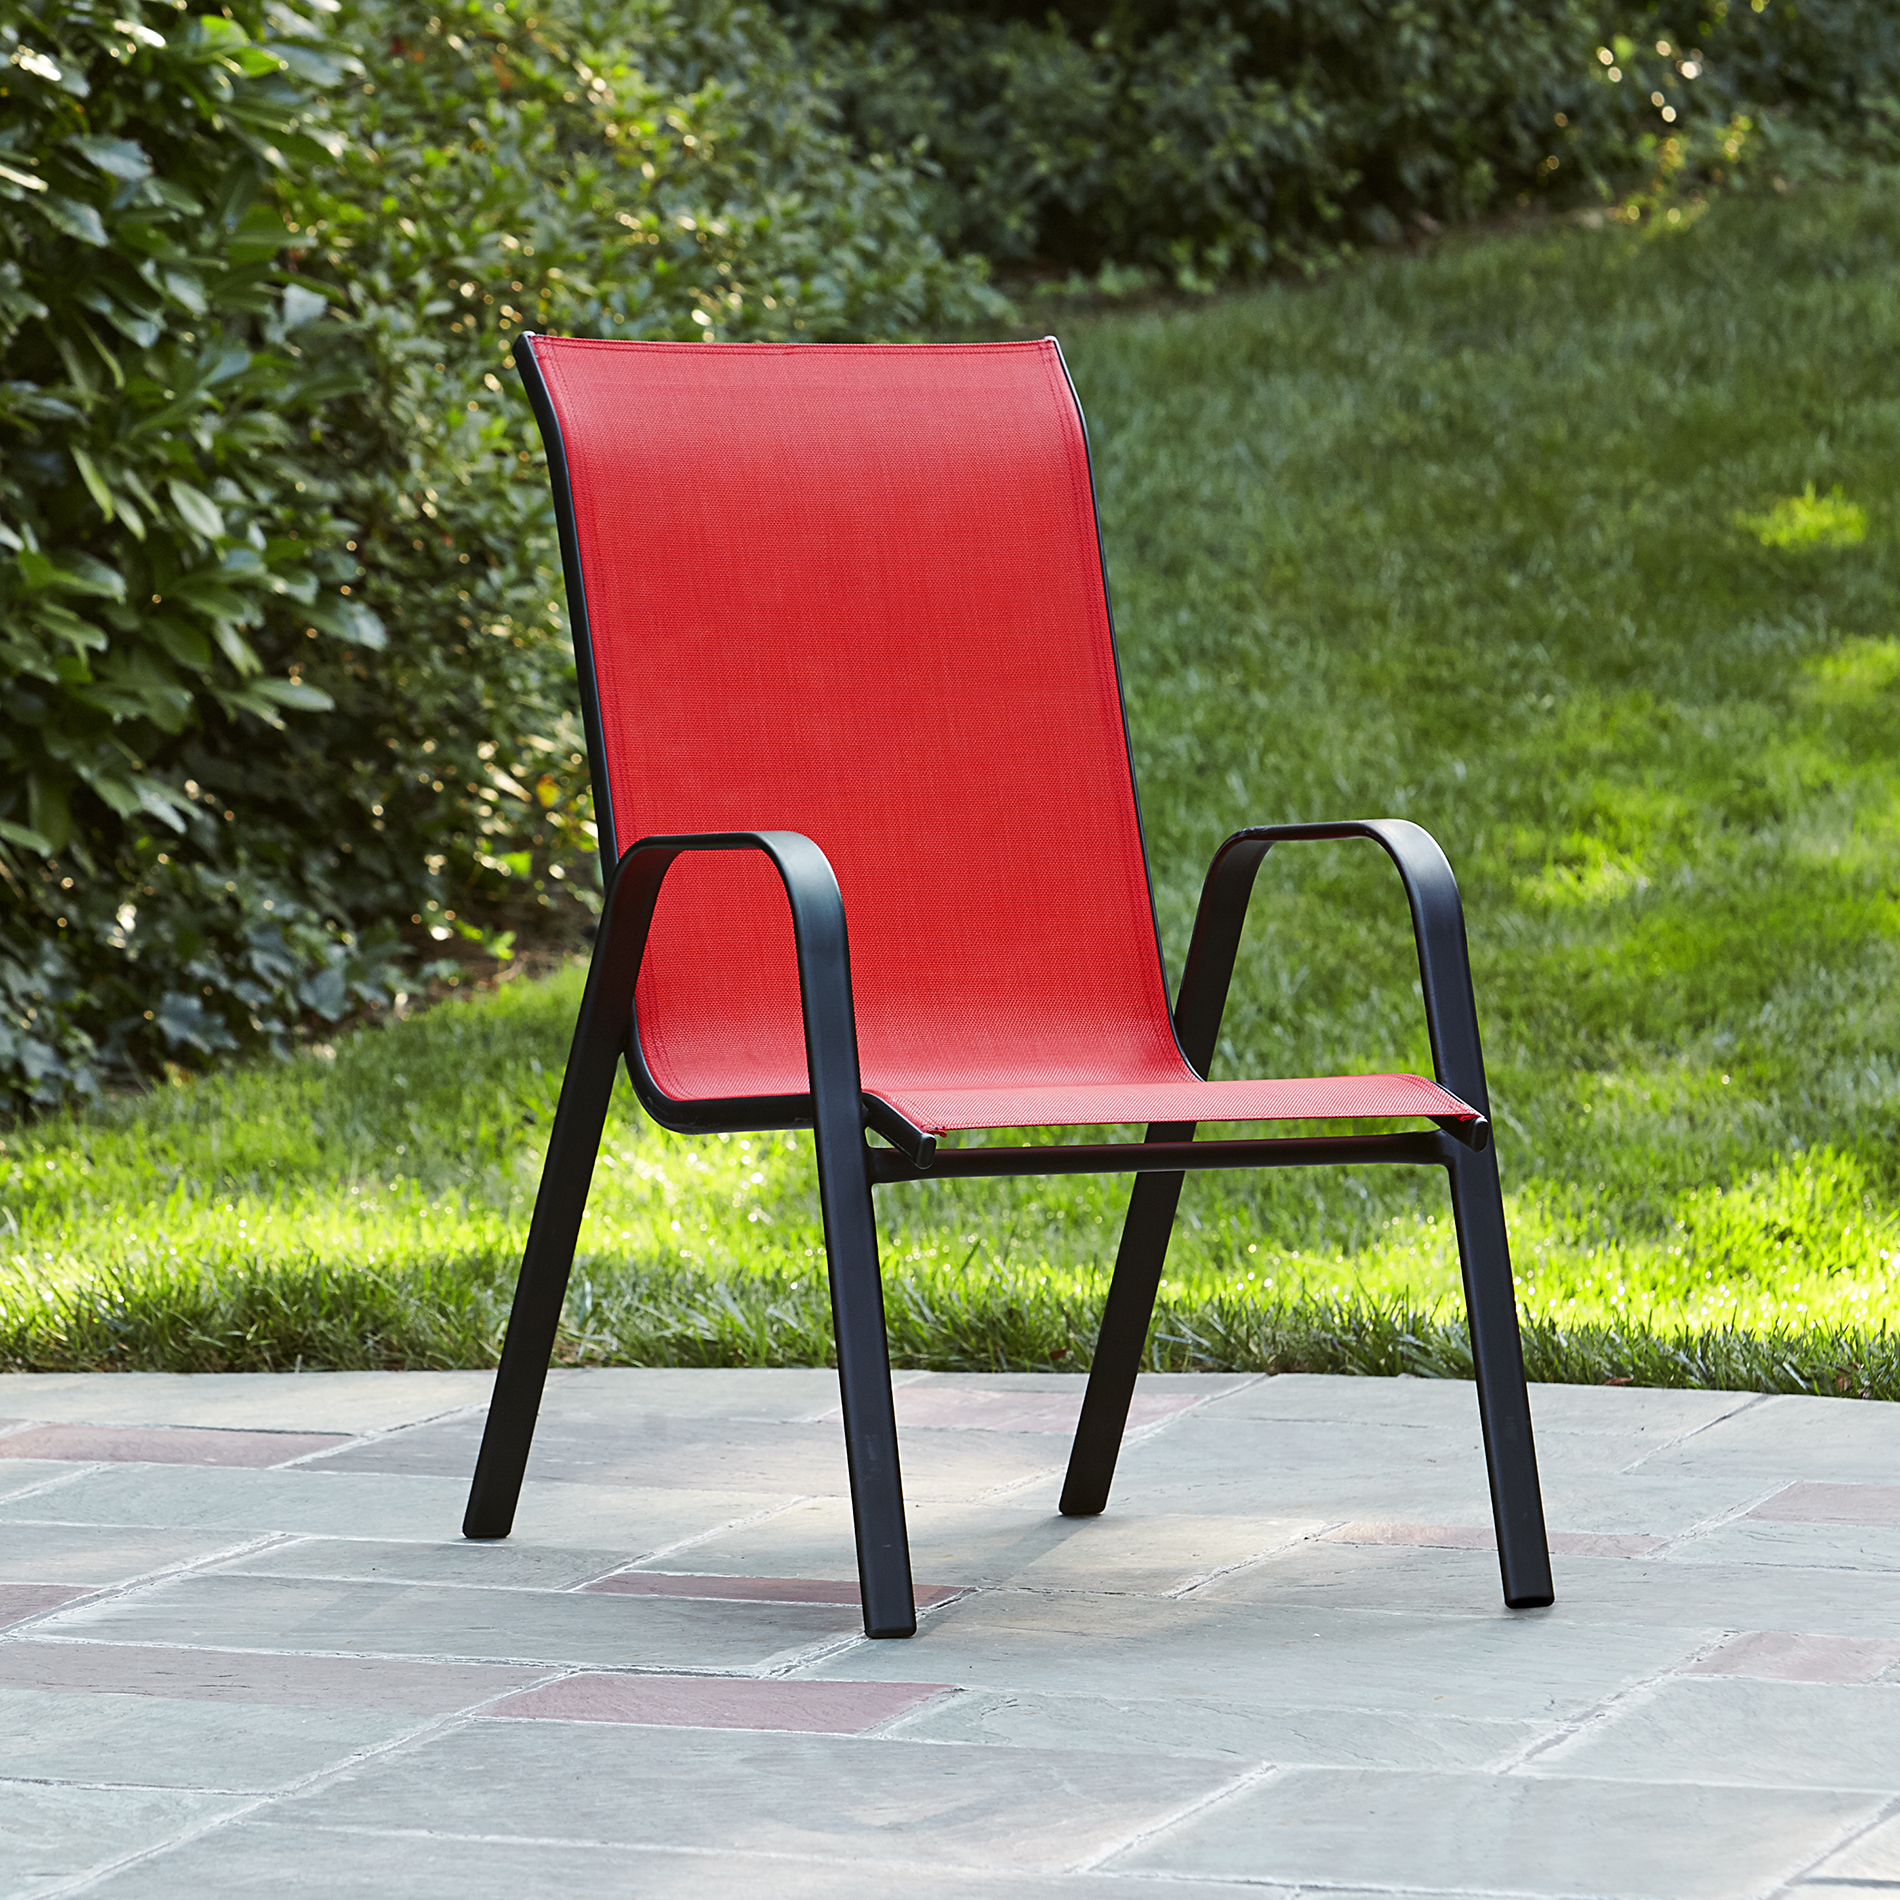 Essential Garden Bartlett Solid Red Stack Chair - Kmart